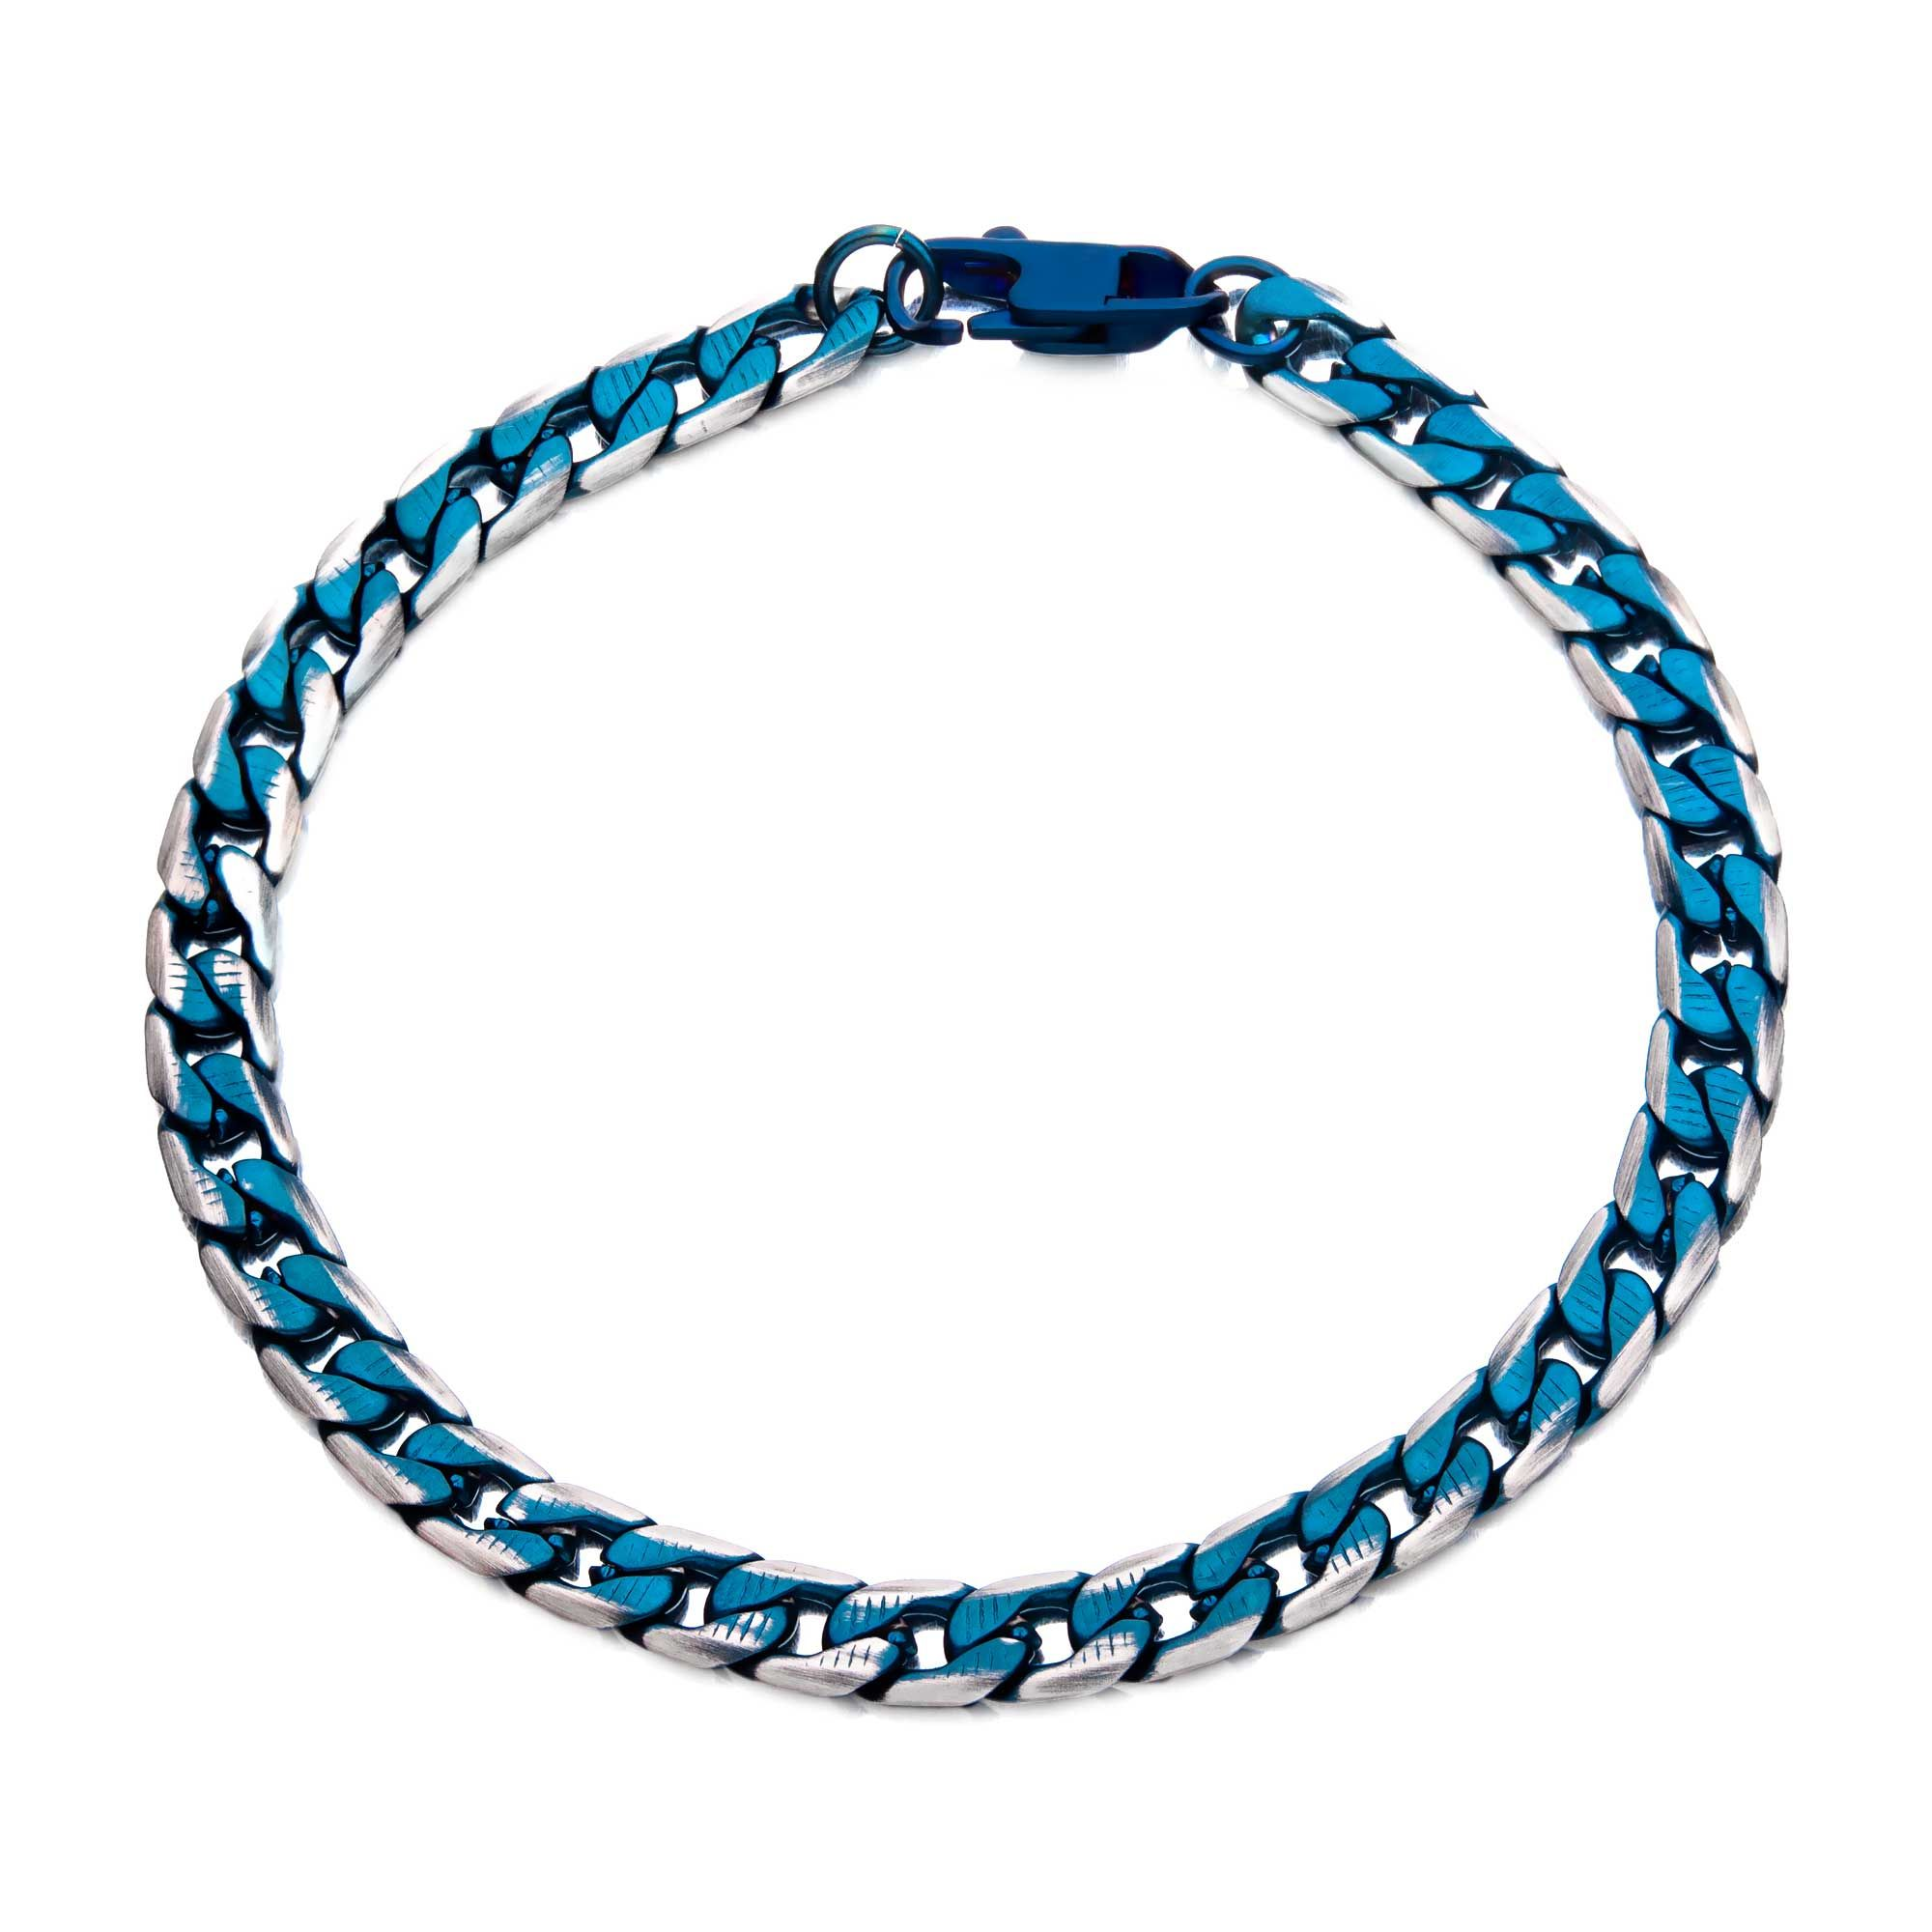 Stainless Steel Blue Plated Curb Cuban Bracelet with Lobster Clasp